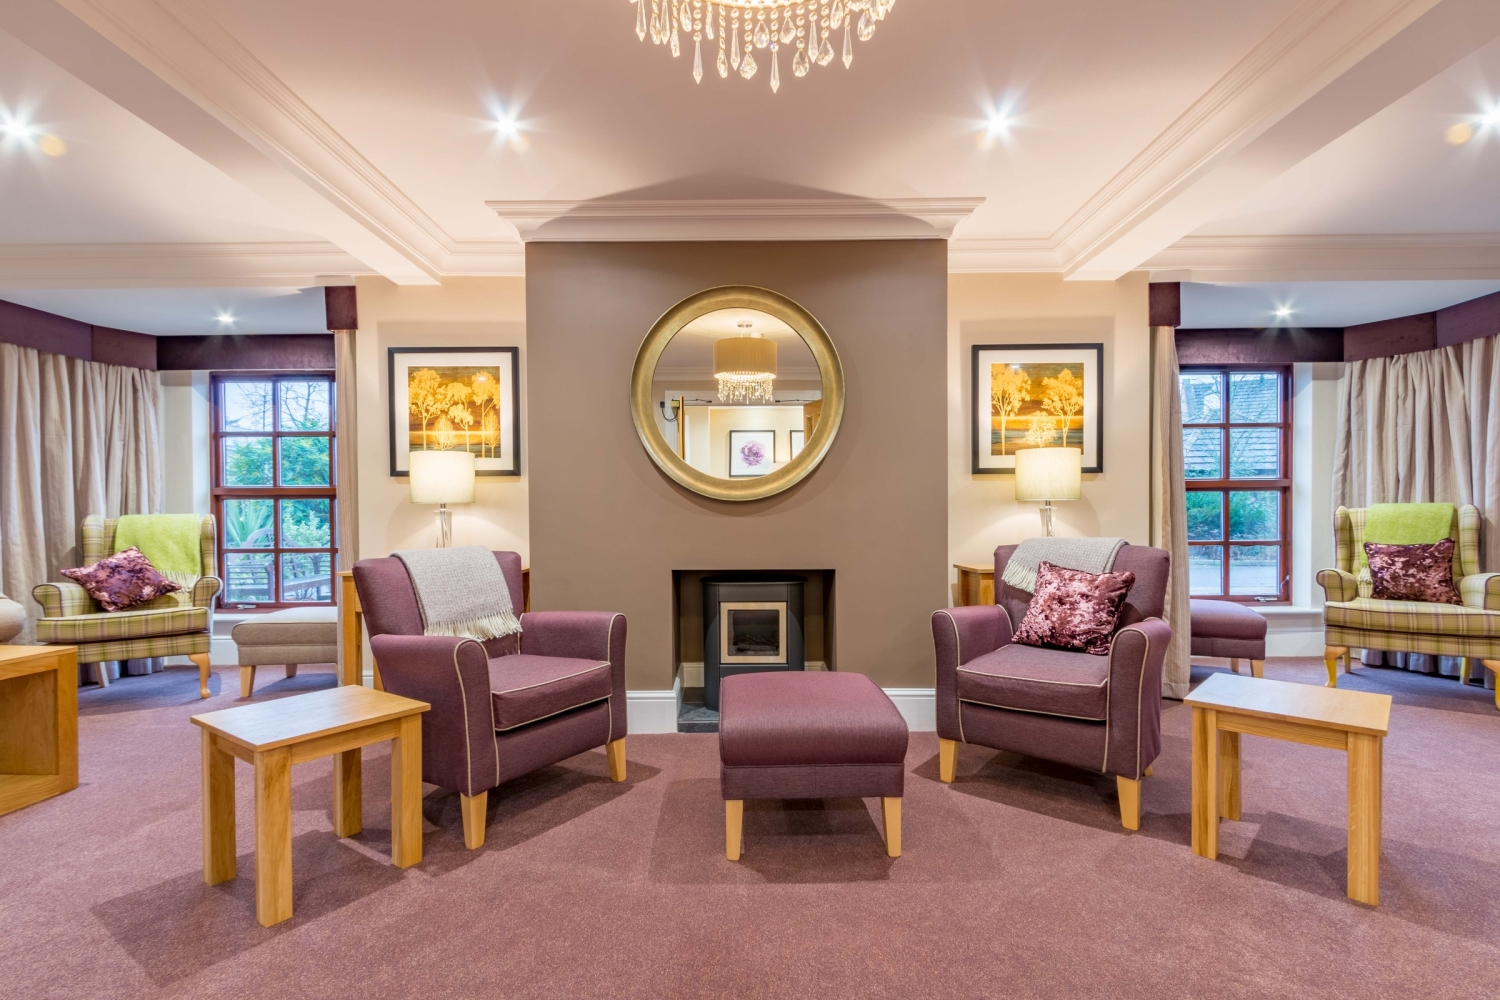 Care Homes in York   Mulberry Court. Care Homes in York   Mulberry Court   Barchester Healthcare